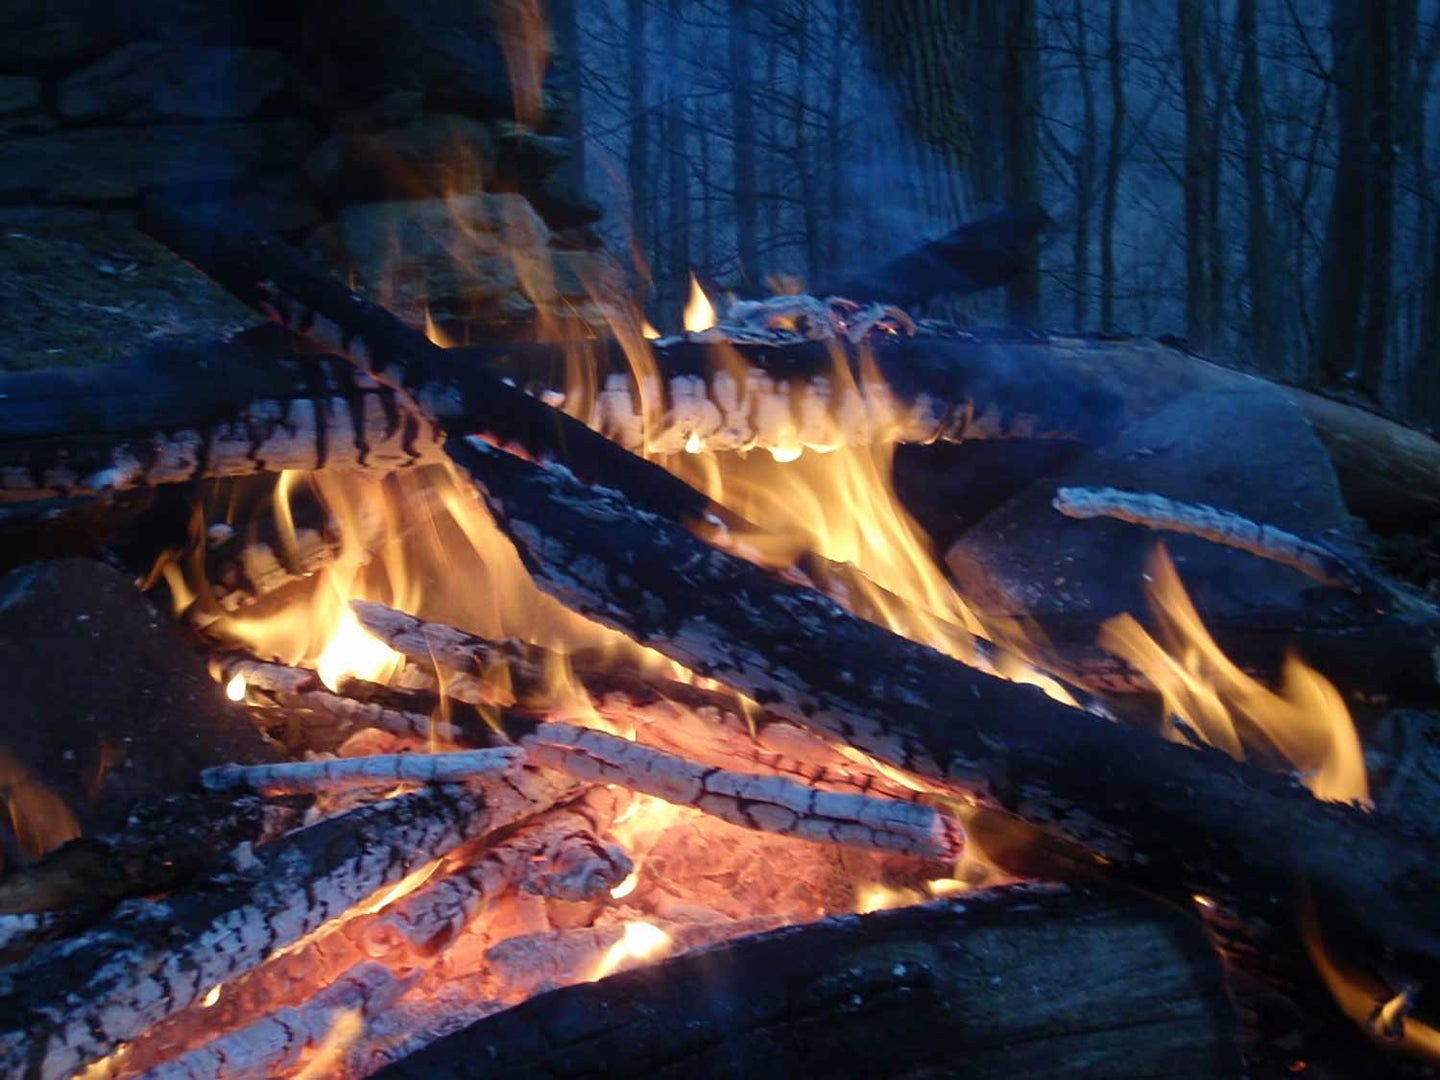 Piles of wood burning and turning to charcoal during a nighttime campfire.